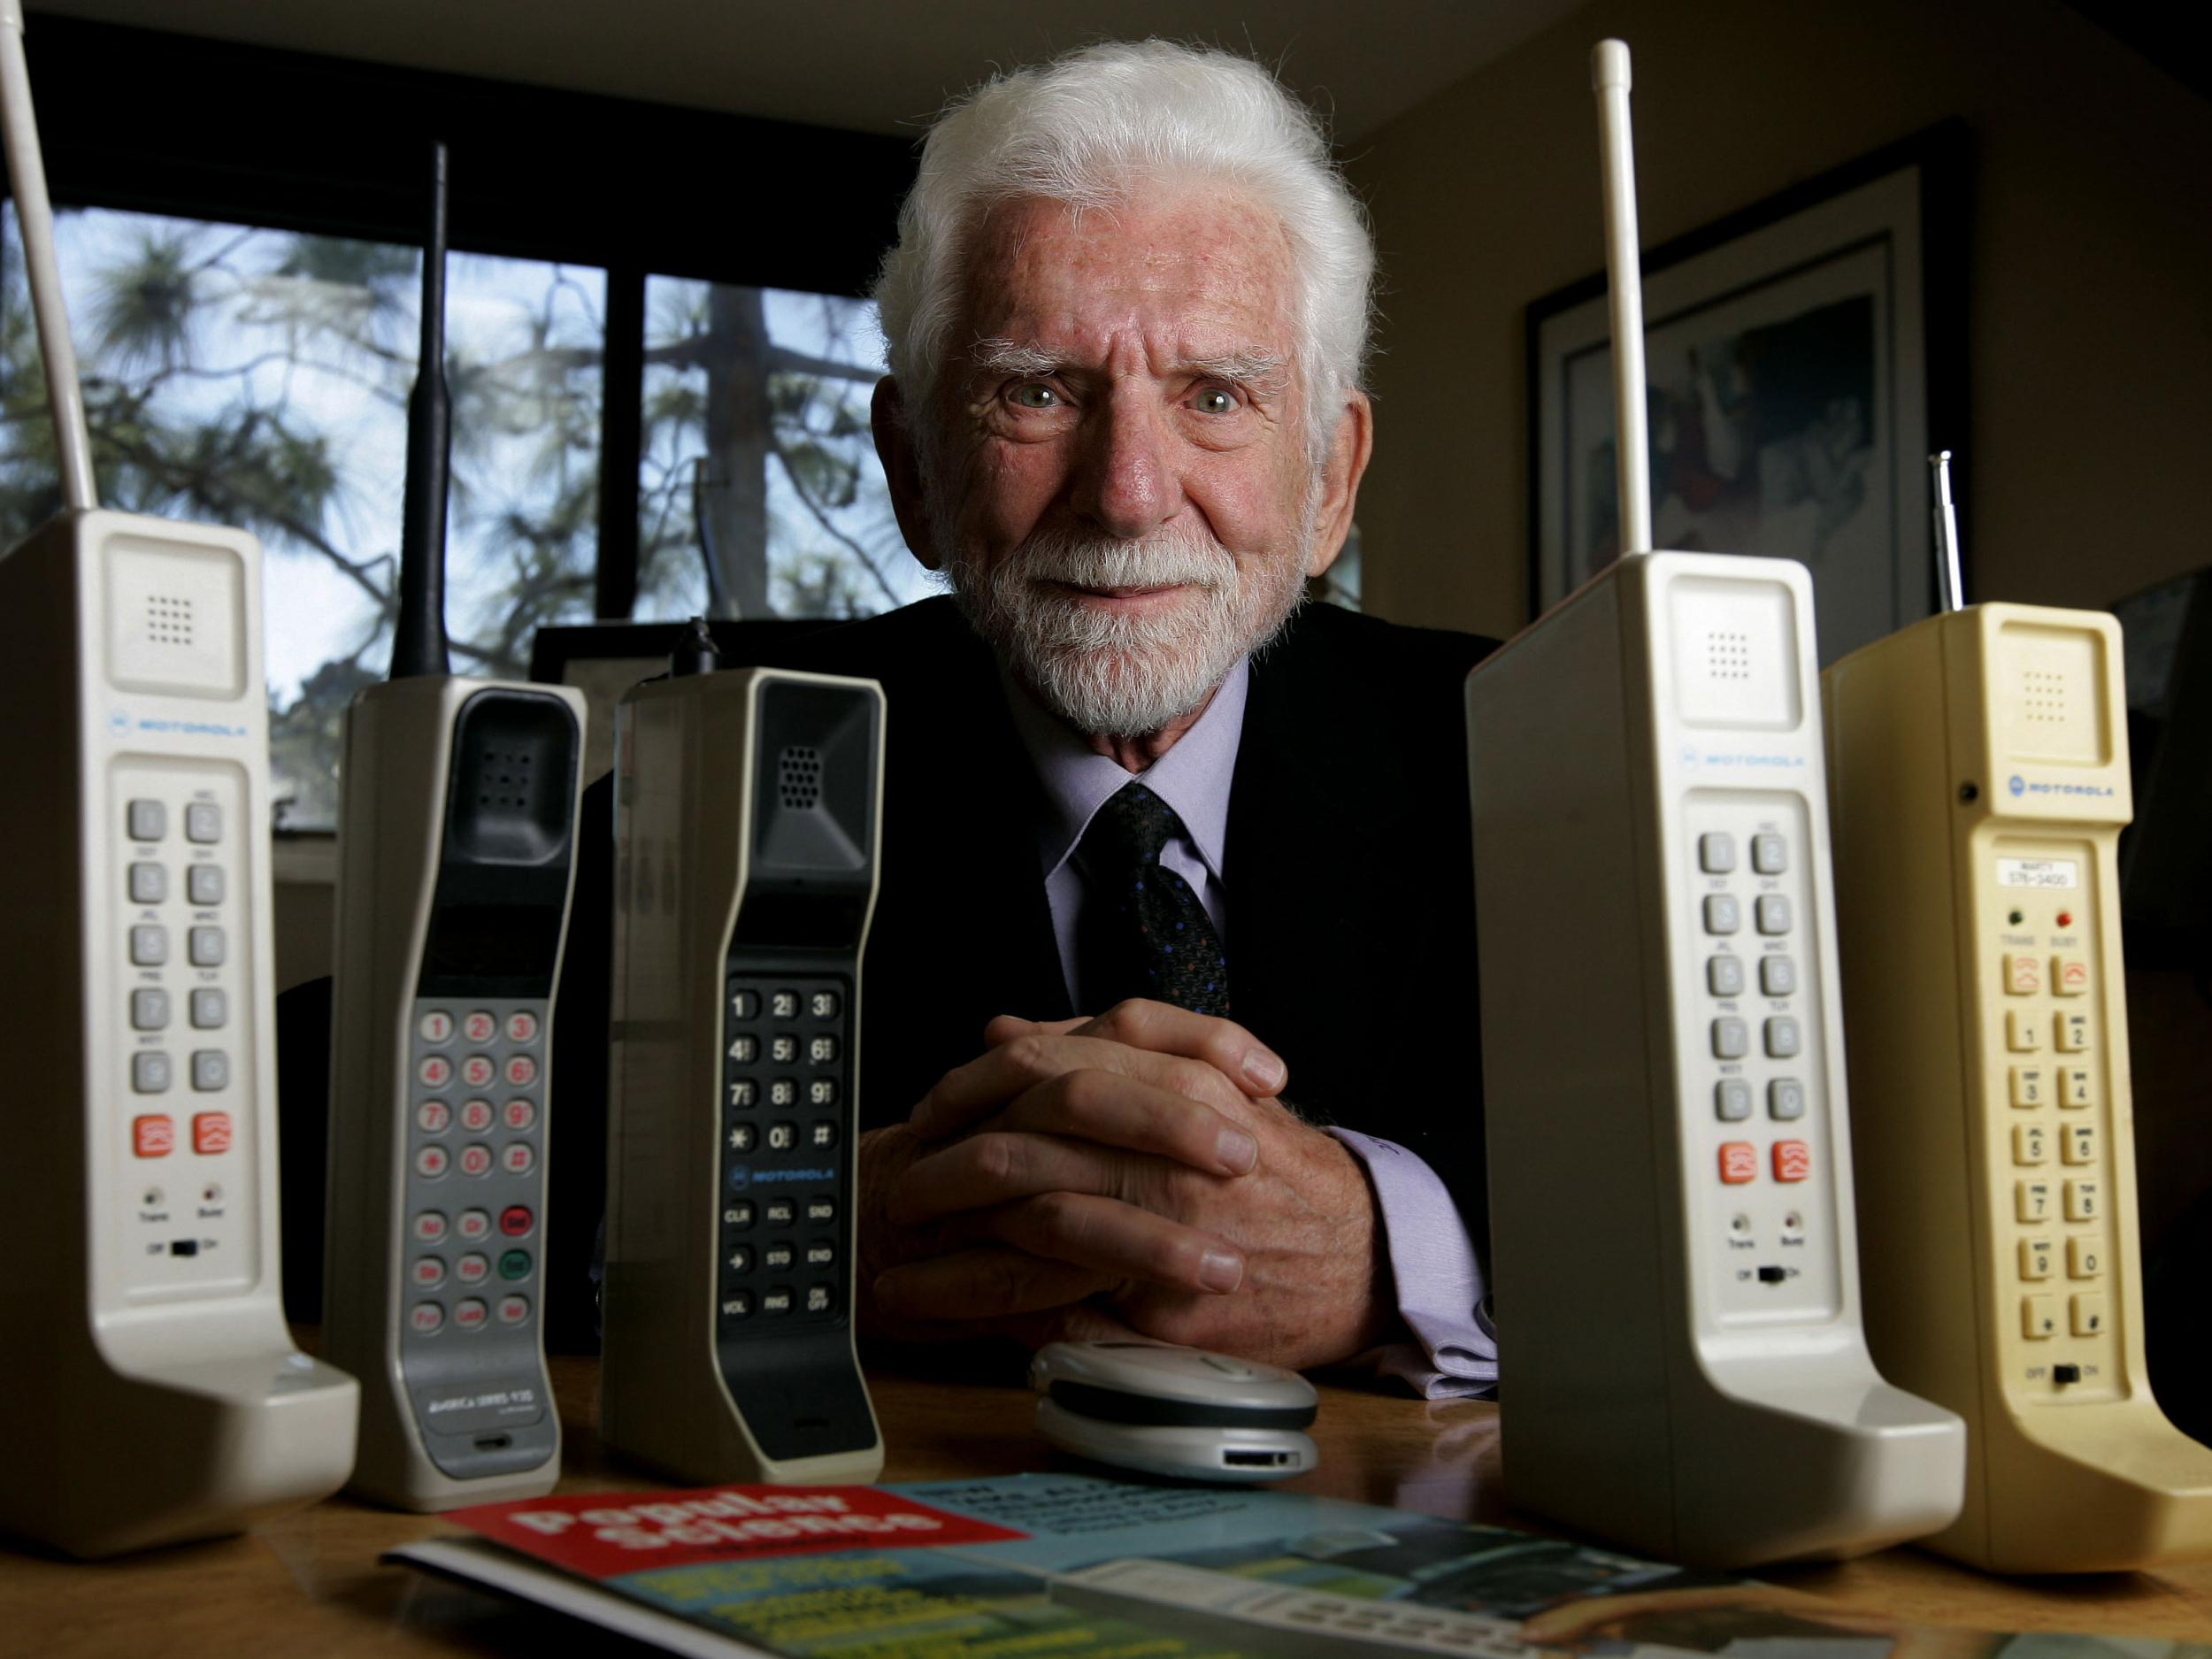 an analysis of mobile phones as one of the greatest inventions of the 20th century What are the most important innovations of the keys are one of the most important inventions that were the greatest innovations to me are phones.